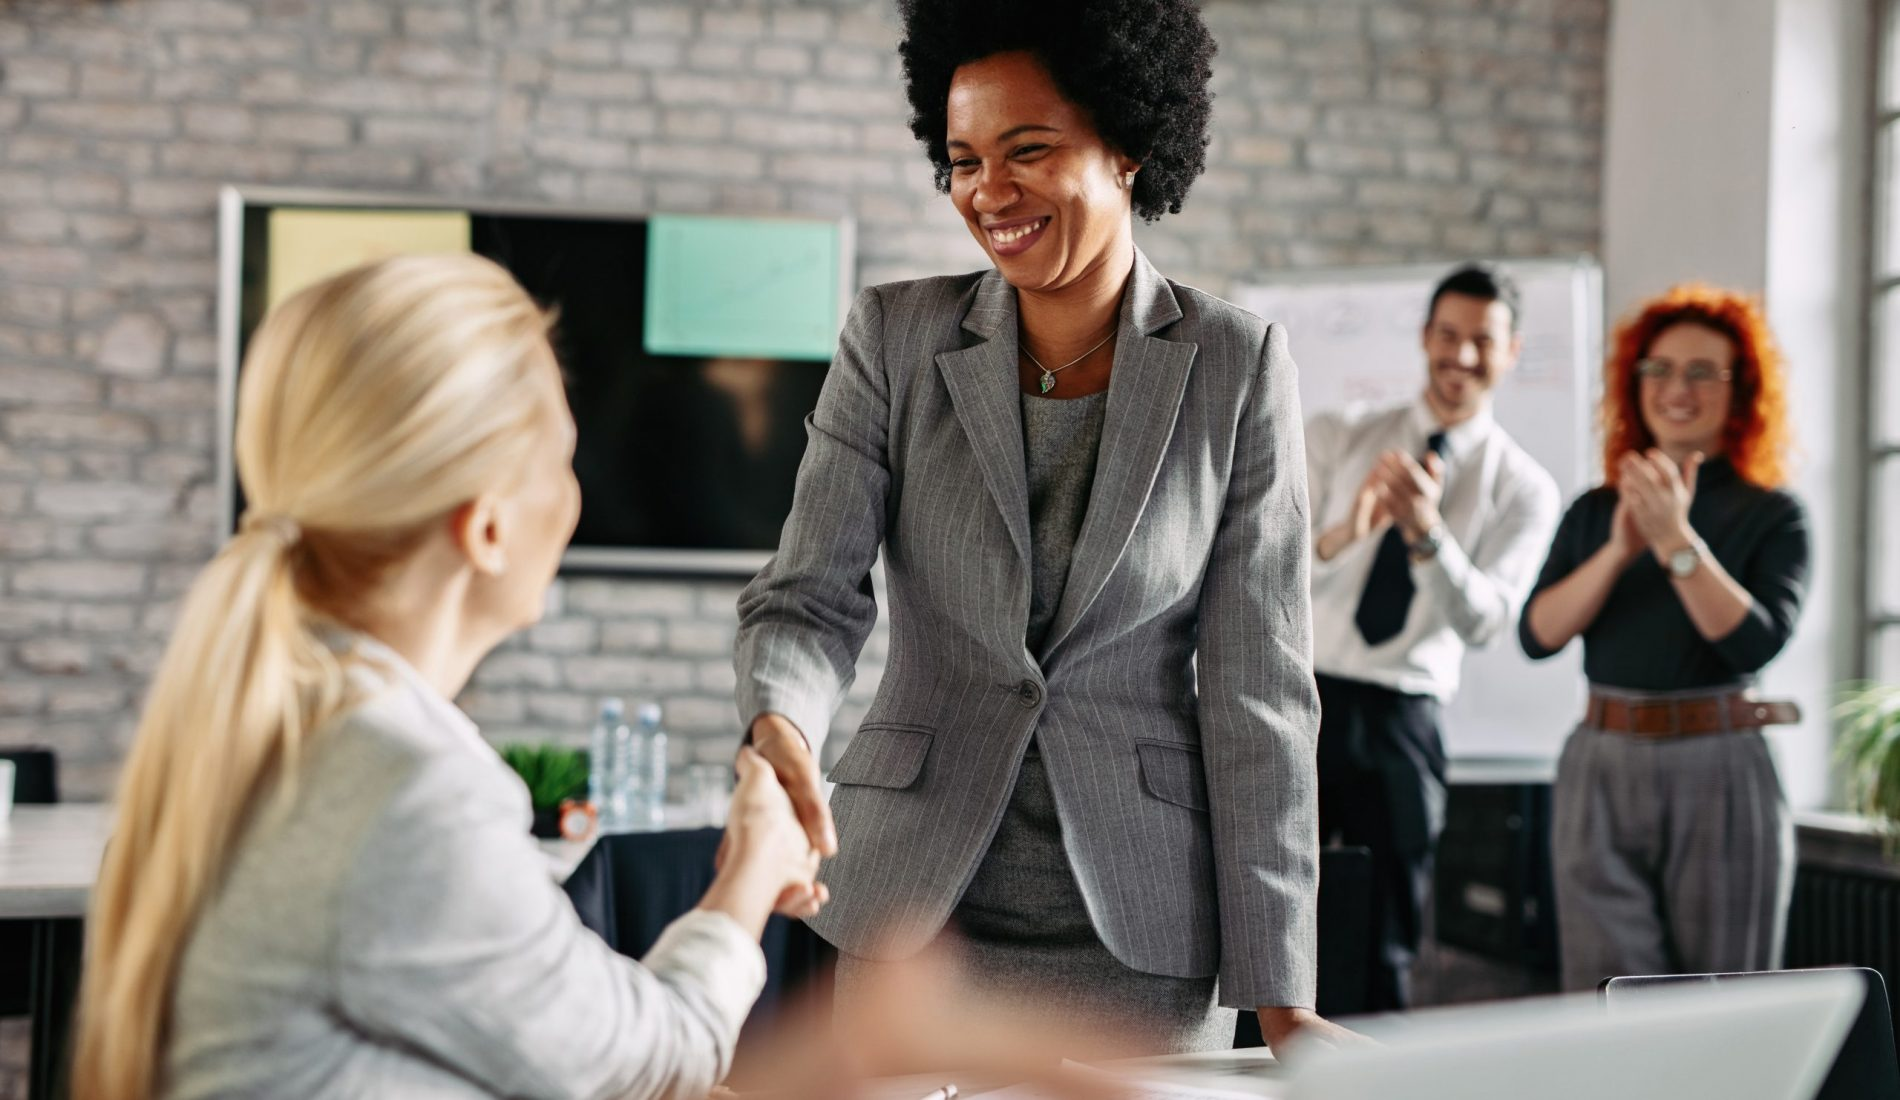 Two happy businesswomen shaking hands and congratulating to each other in the office while their colleagues are applauding. Focus is on Africa America businesswoman.